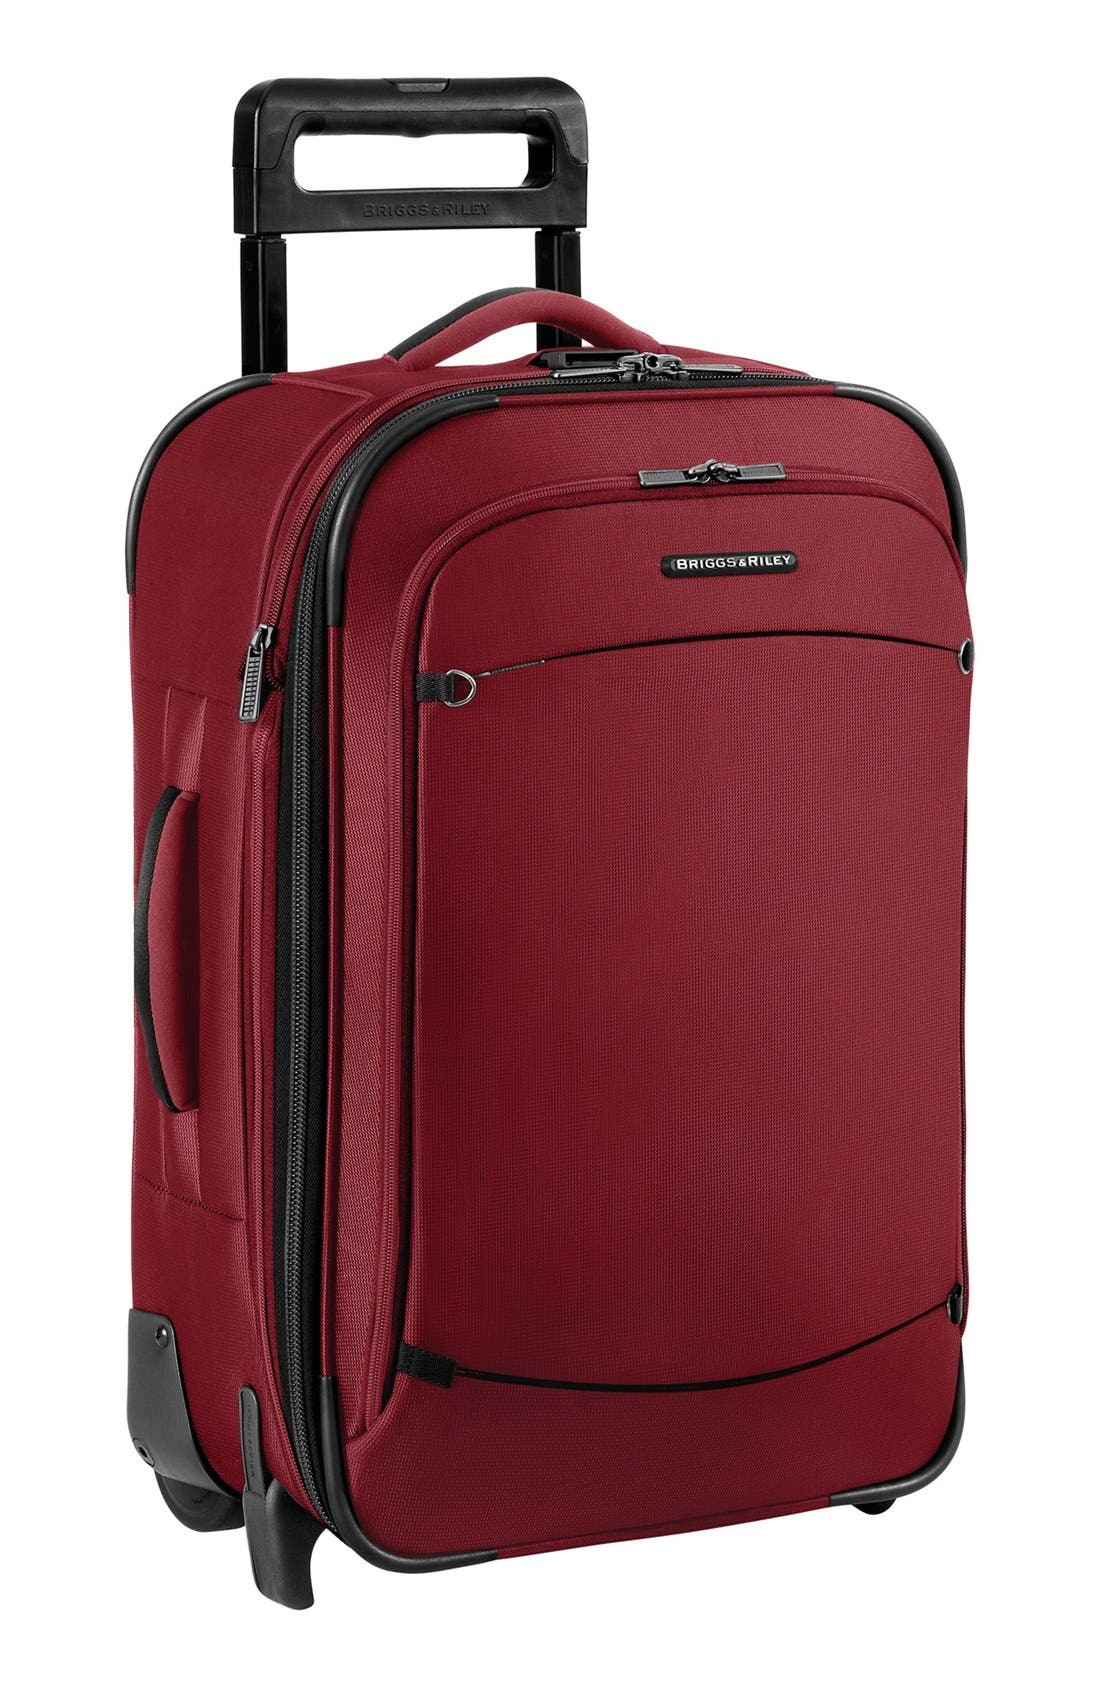 Alternate Image 1 Selected - Briggs & Riley Rolling Carry-On Bag (22-Inch)